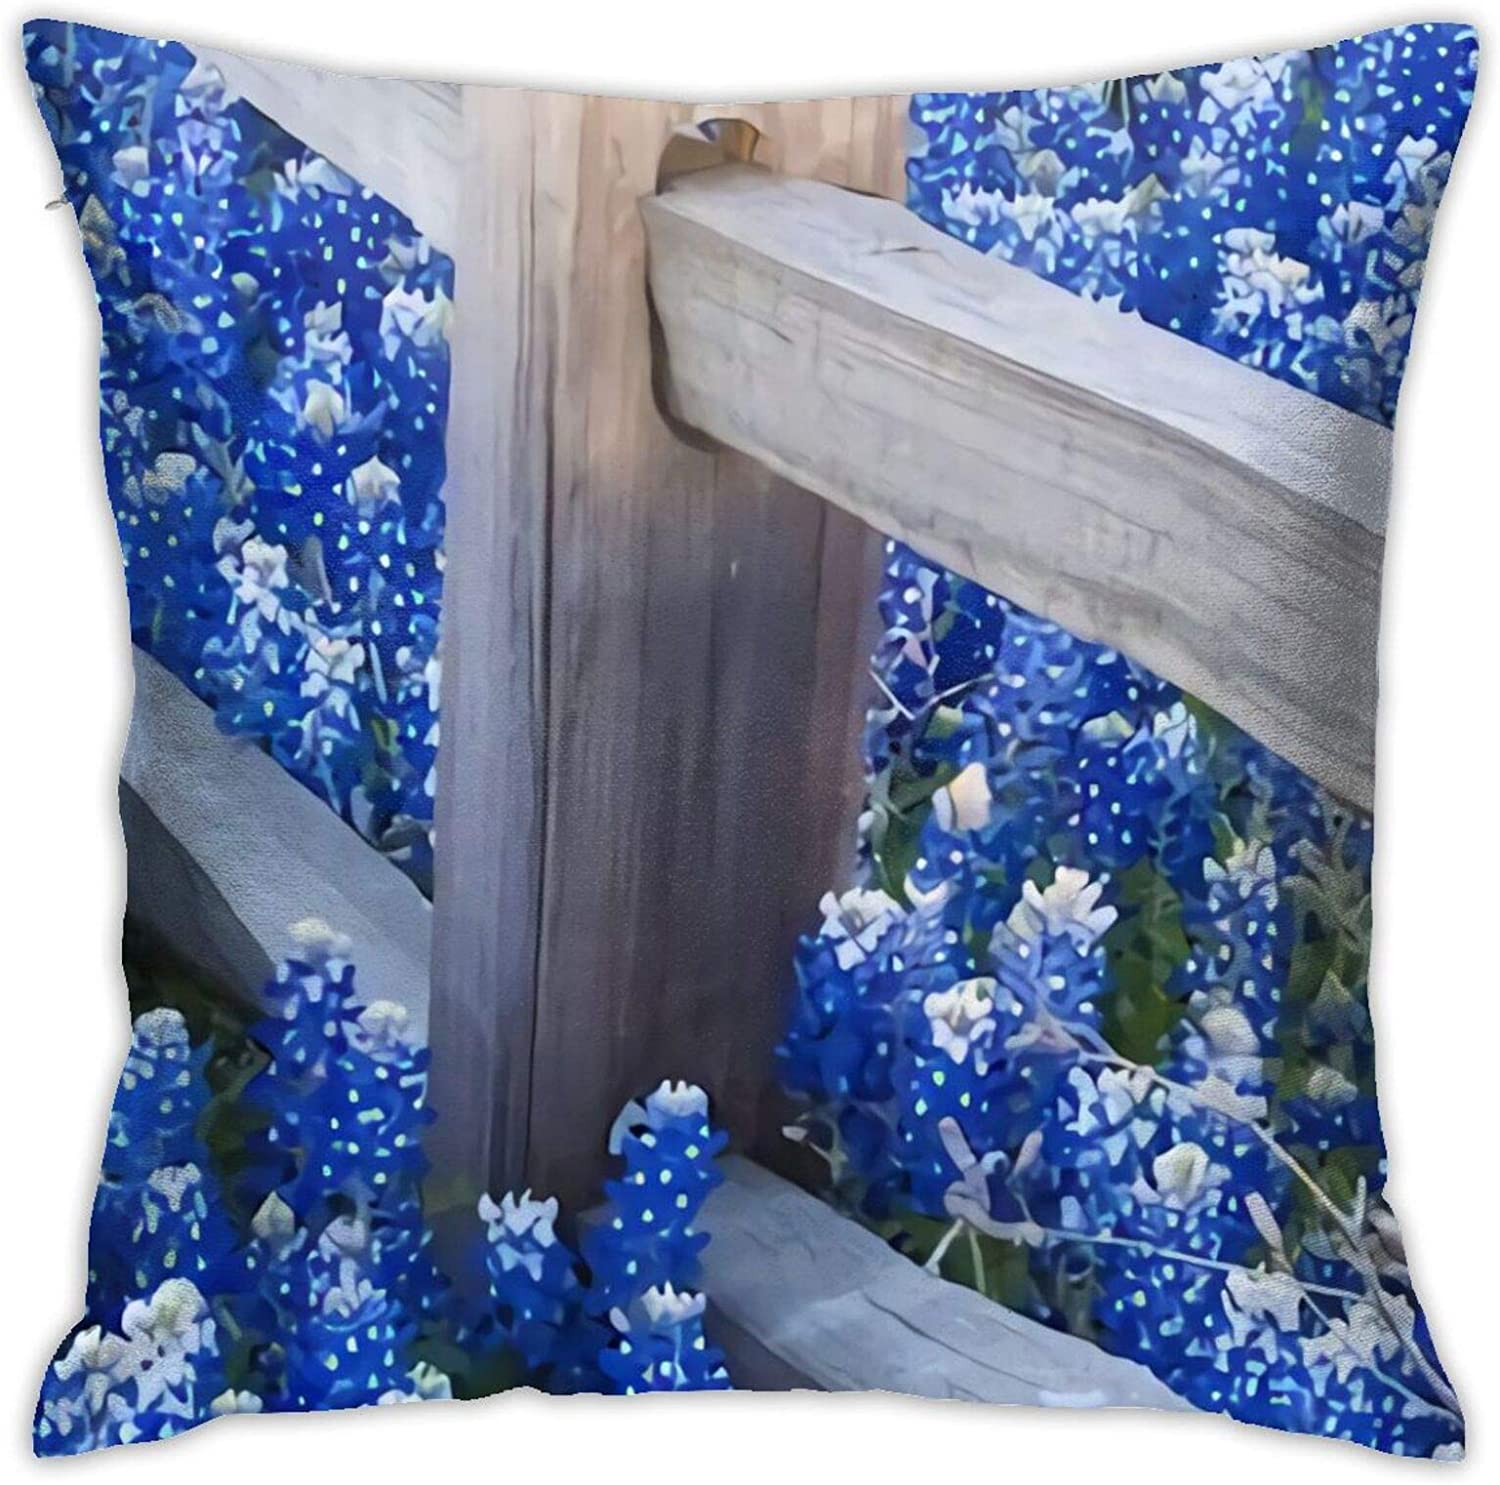 GERERIC Spasm price Throw Pillow Covers Background Bluebonnets 18X18 Import Flowers